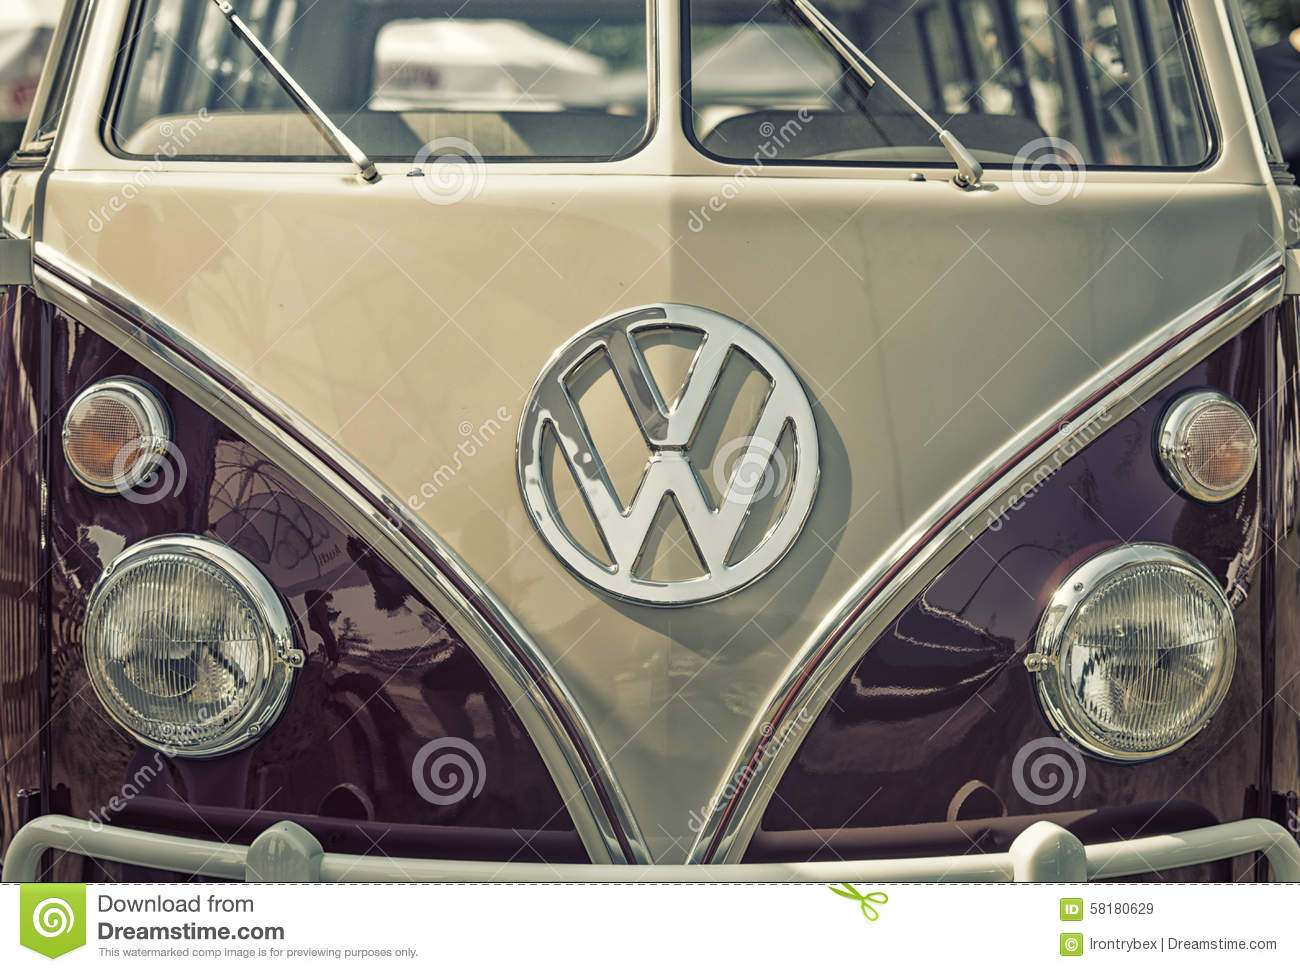 Car Logo Stock Photos Royalty Free Images Dreamstime